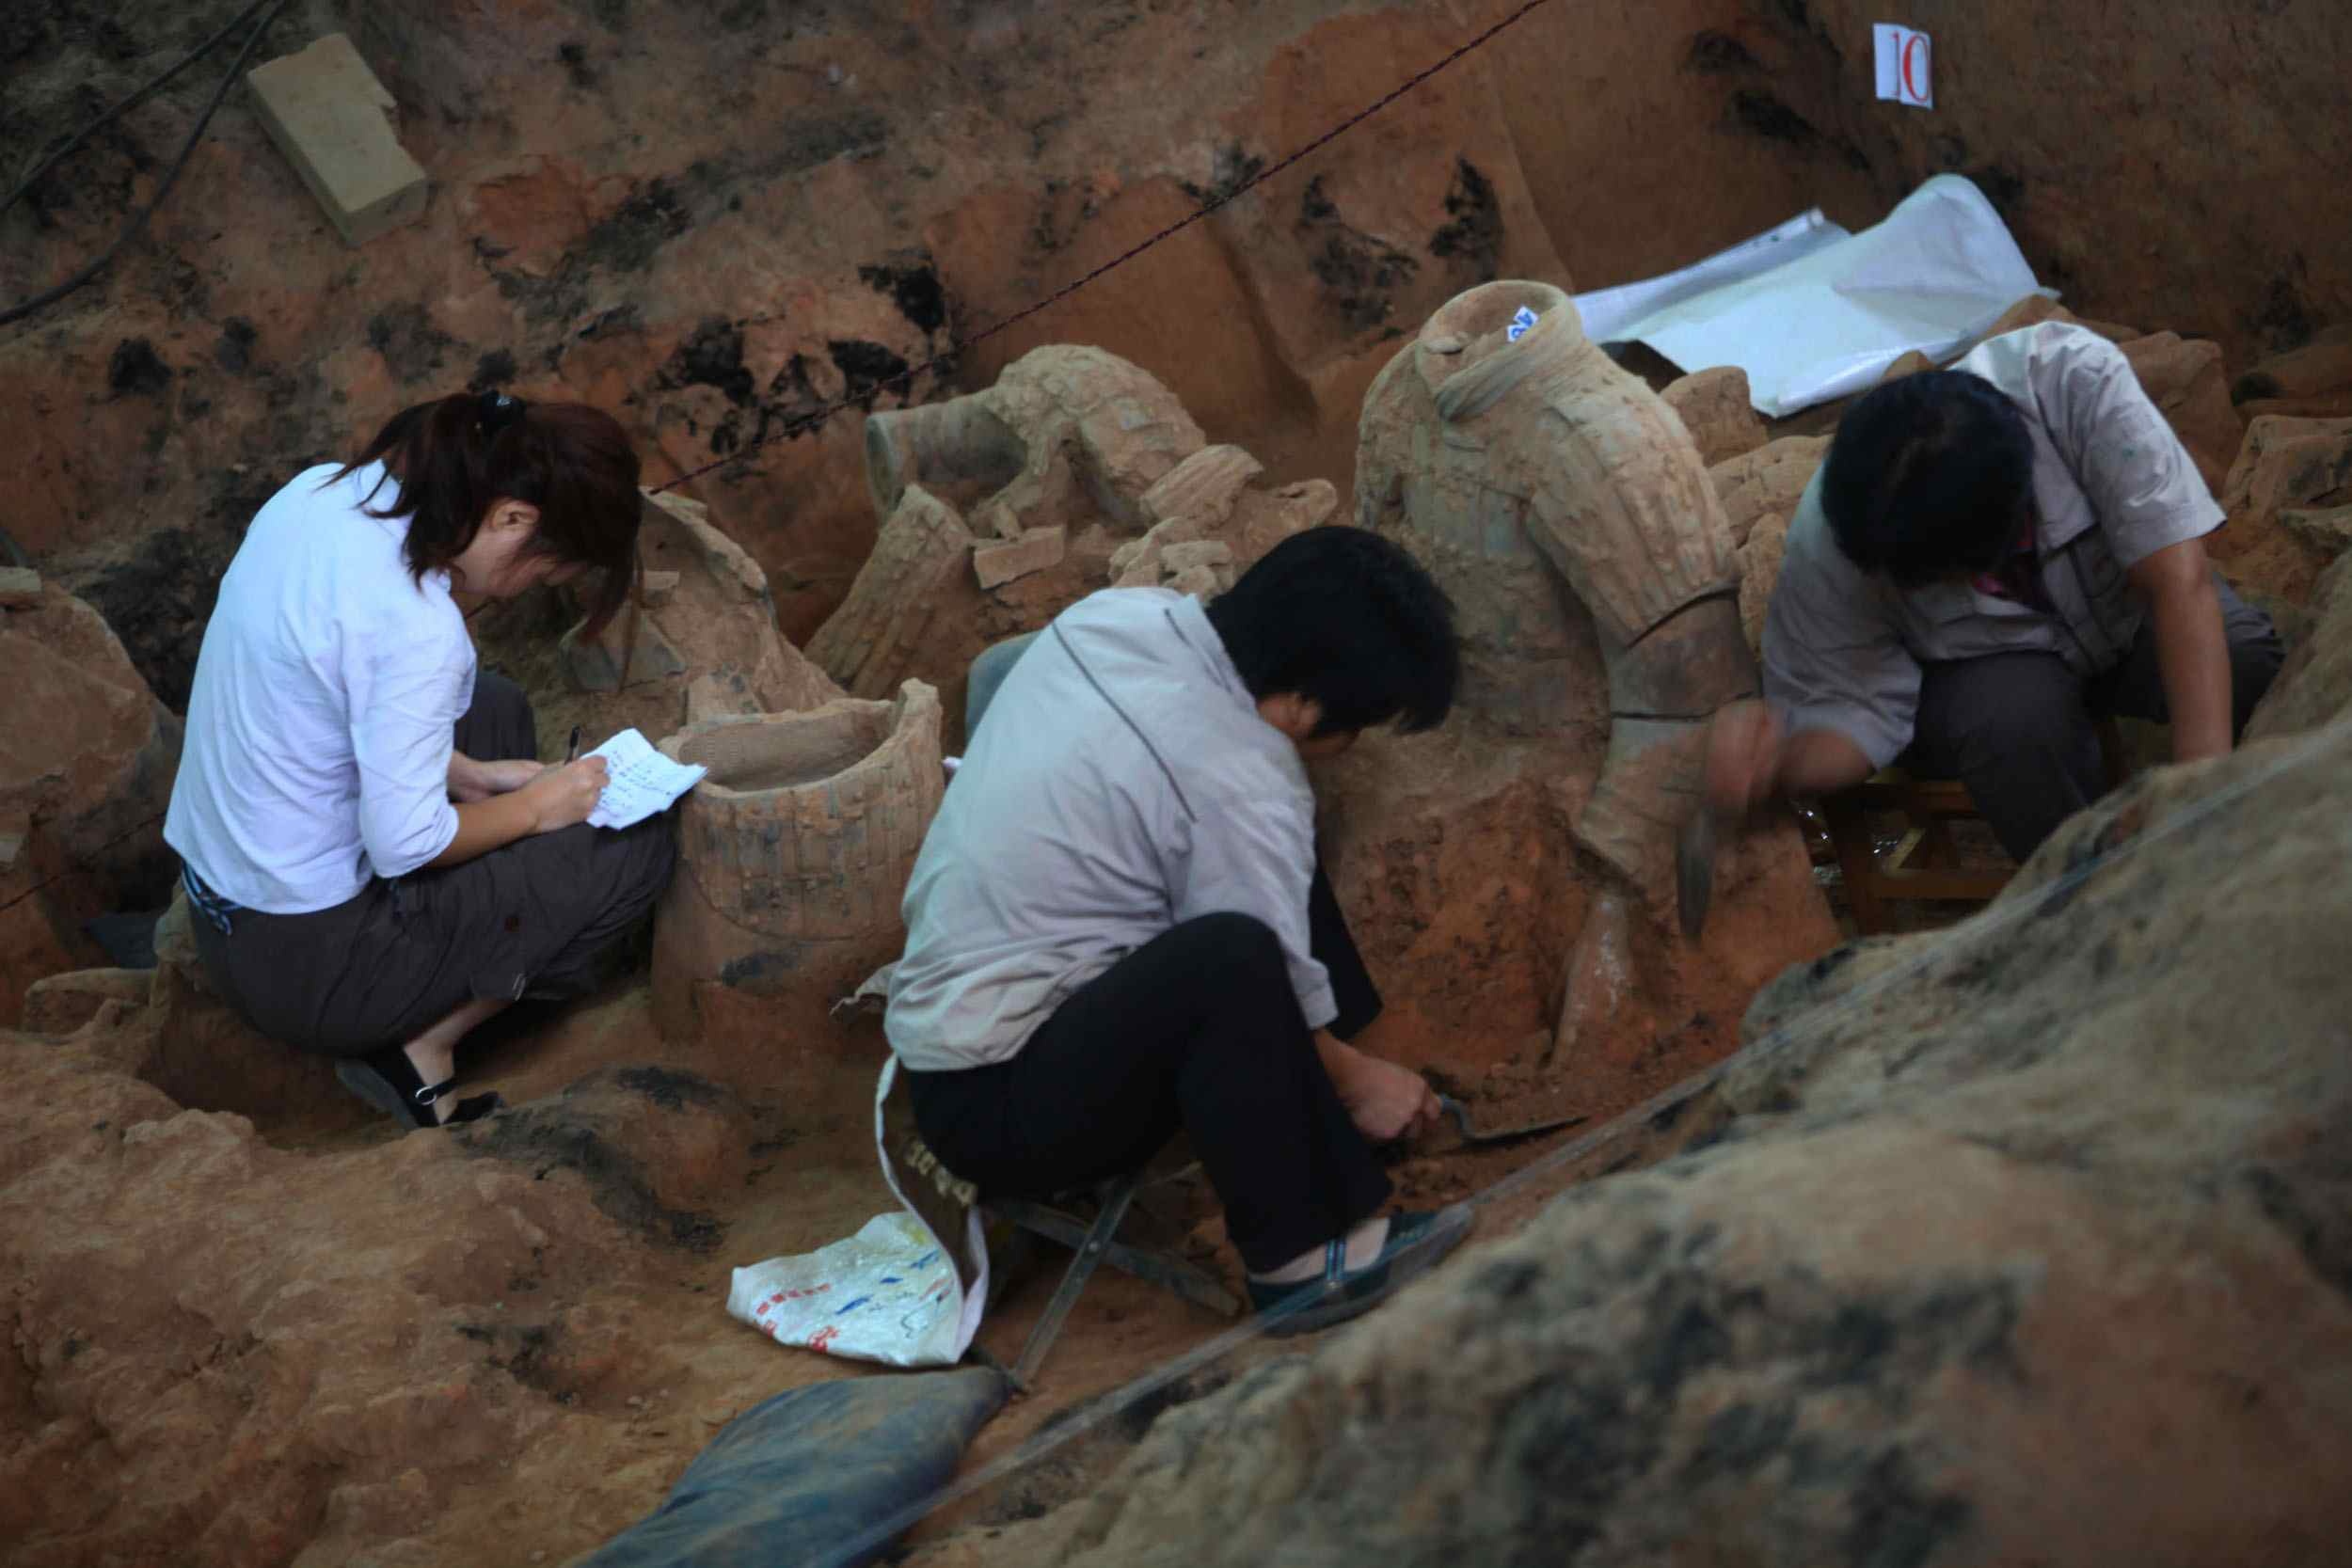 Archaeologists work at the excavation site of No. 1 pit of the Qin Shihuang Terracotta Warriors and Horses Museum in Lintong District of Xian, Shaanxi Province, China. (August 2009)